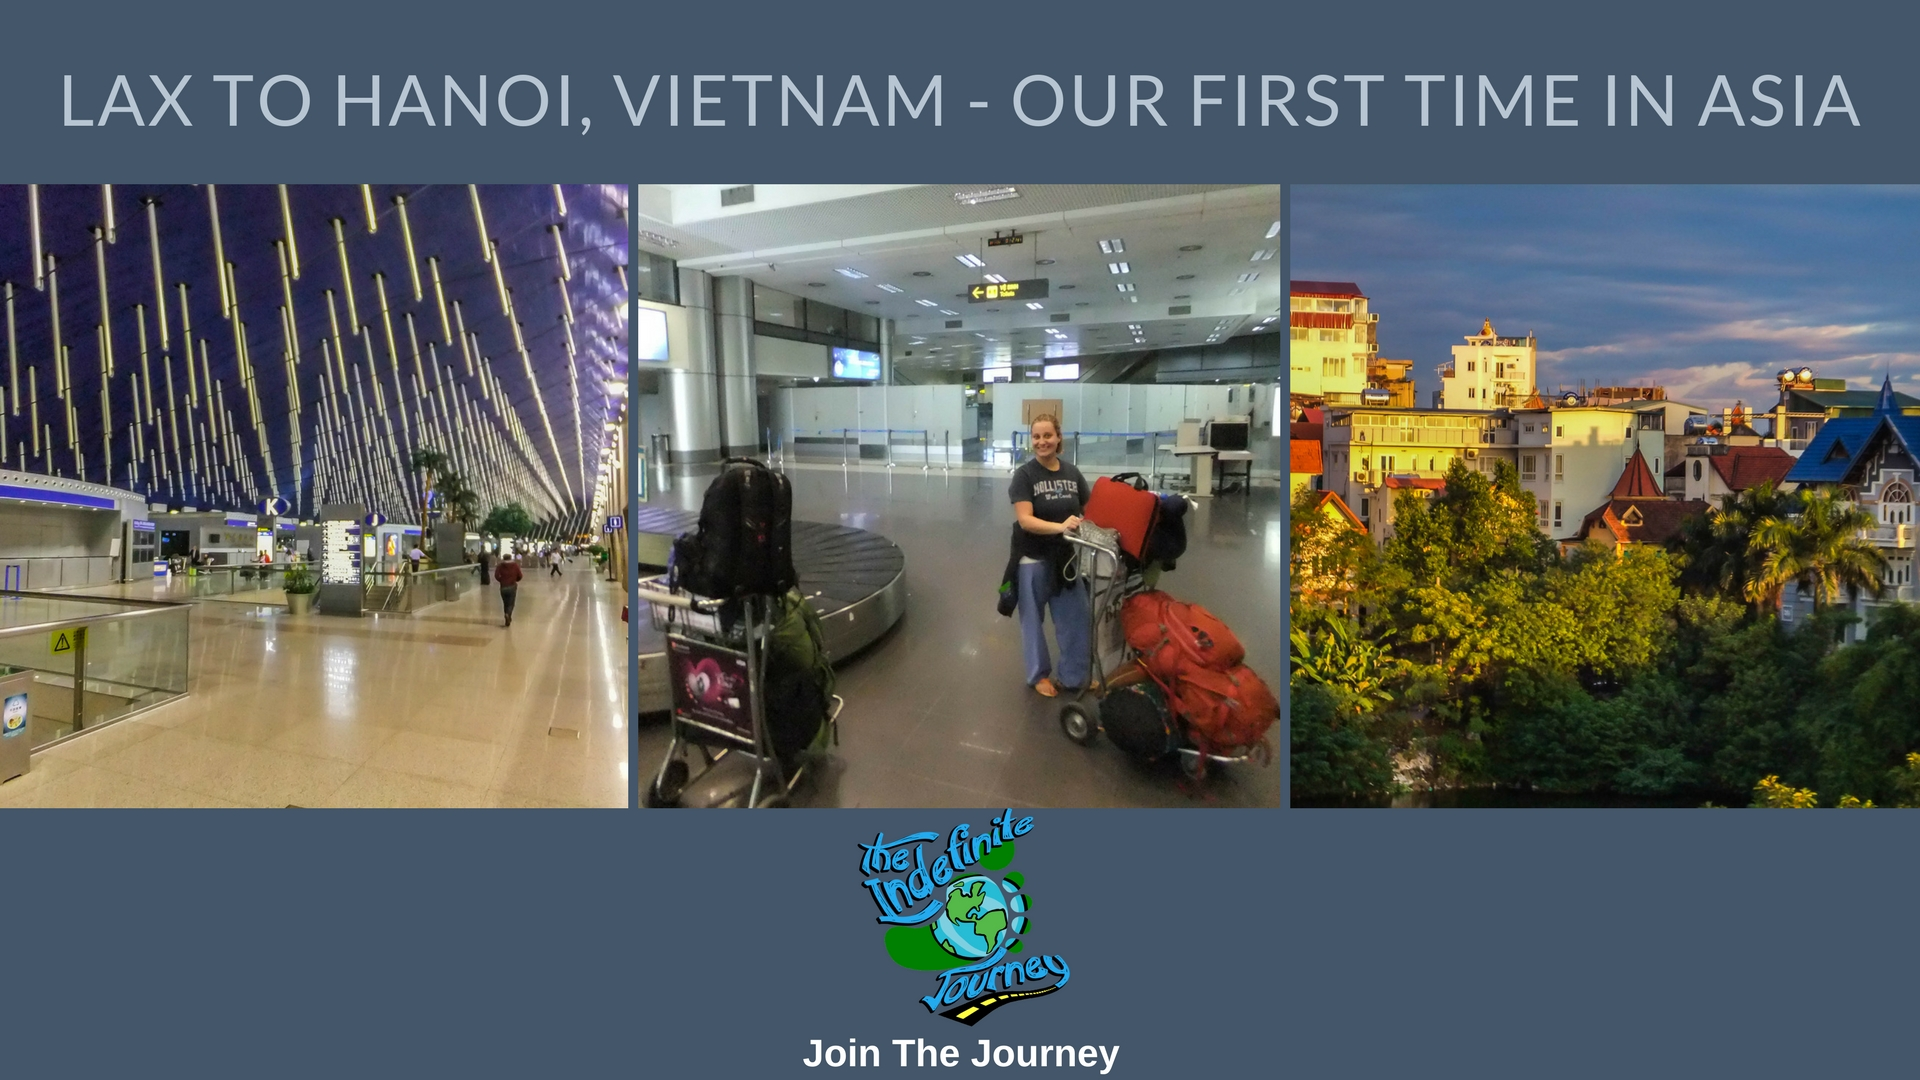 LAX to Hanoi, Vietnam - Our First Time In Asia